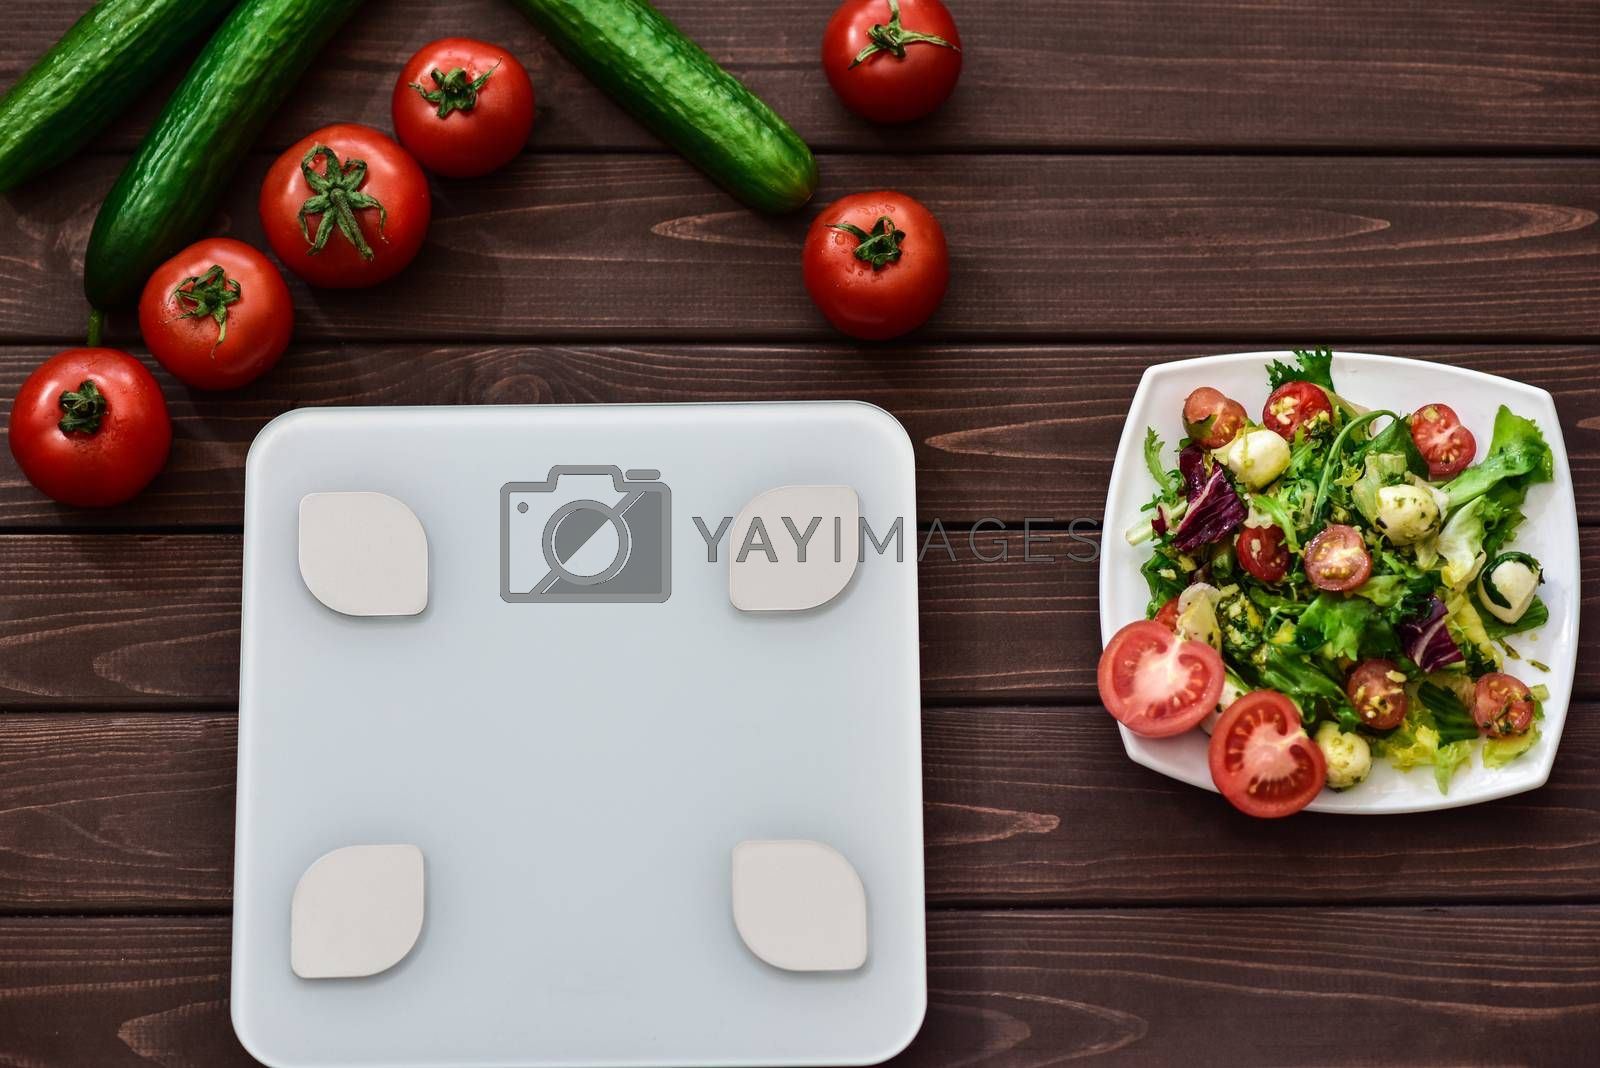 dieting and control calories for good health concept. salad. smart weight scales. veggies on board. fitness concept.